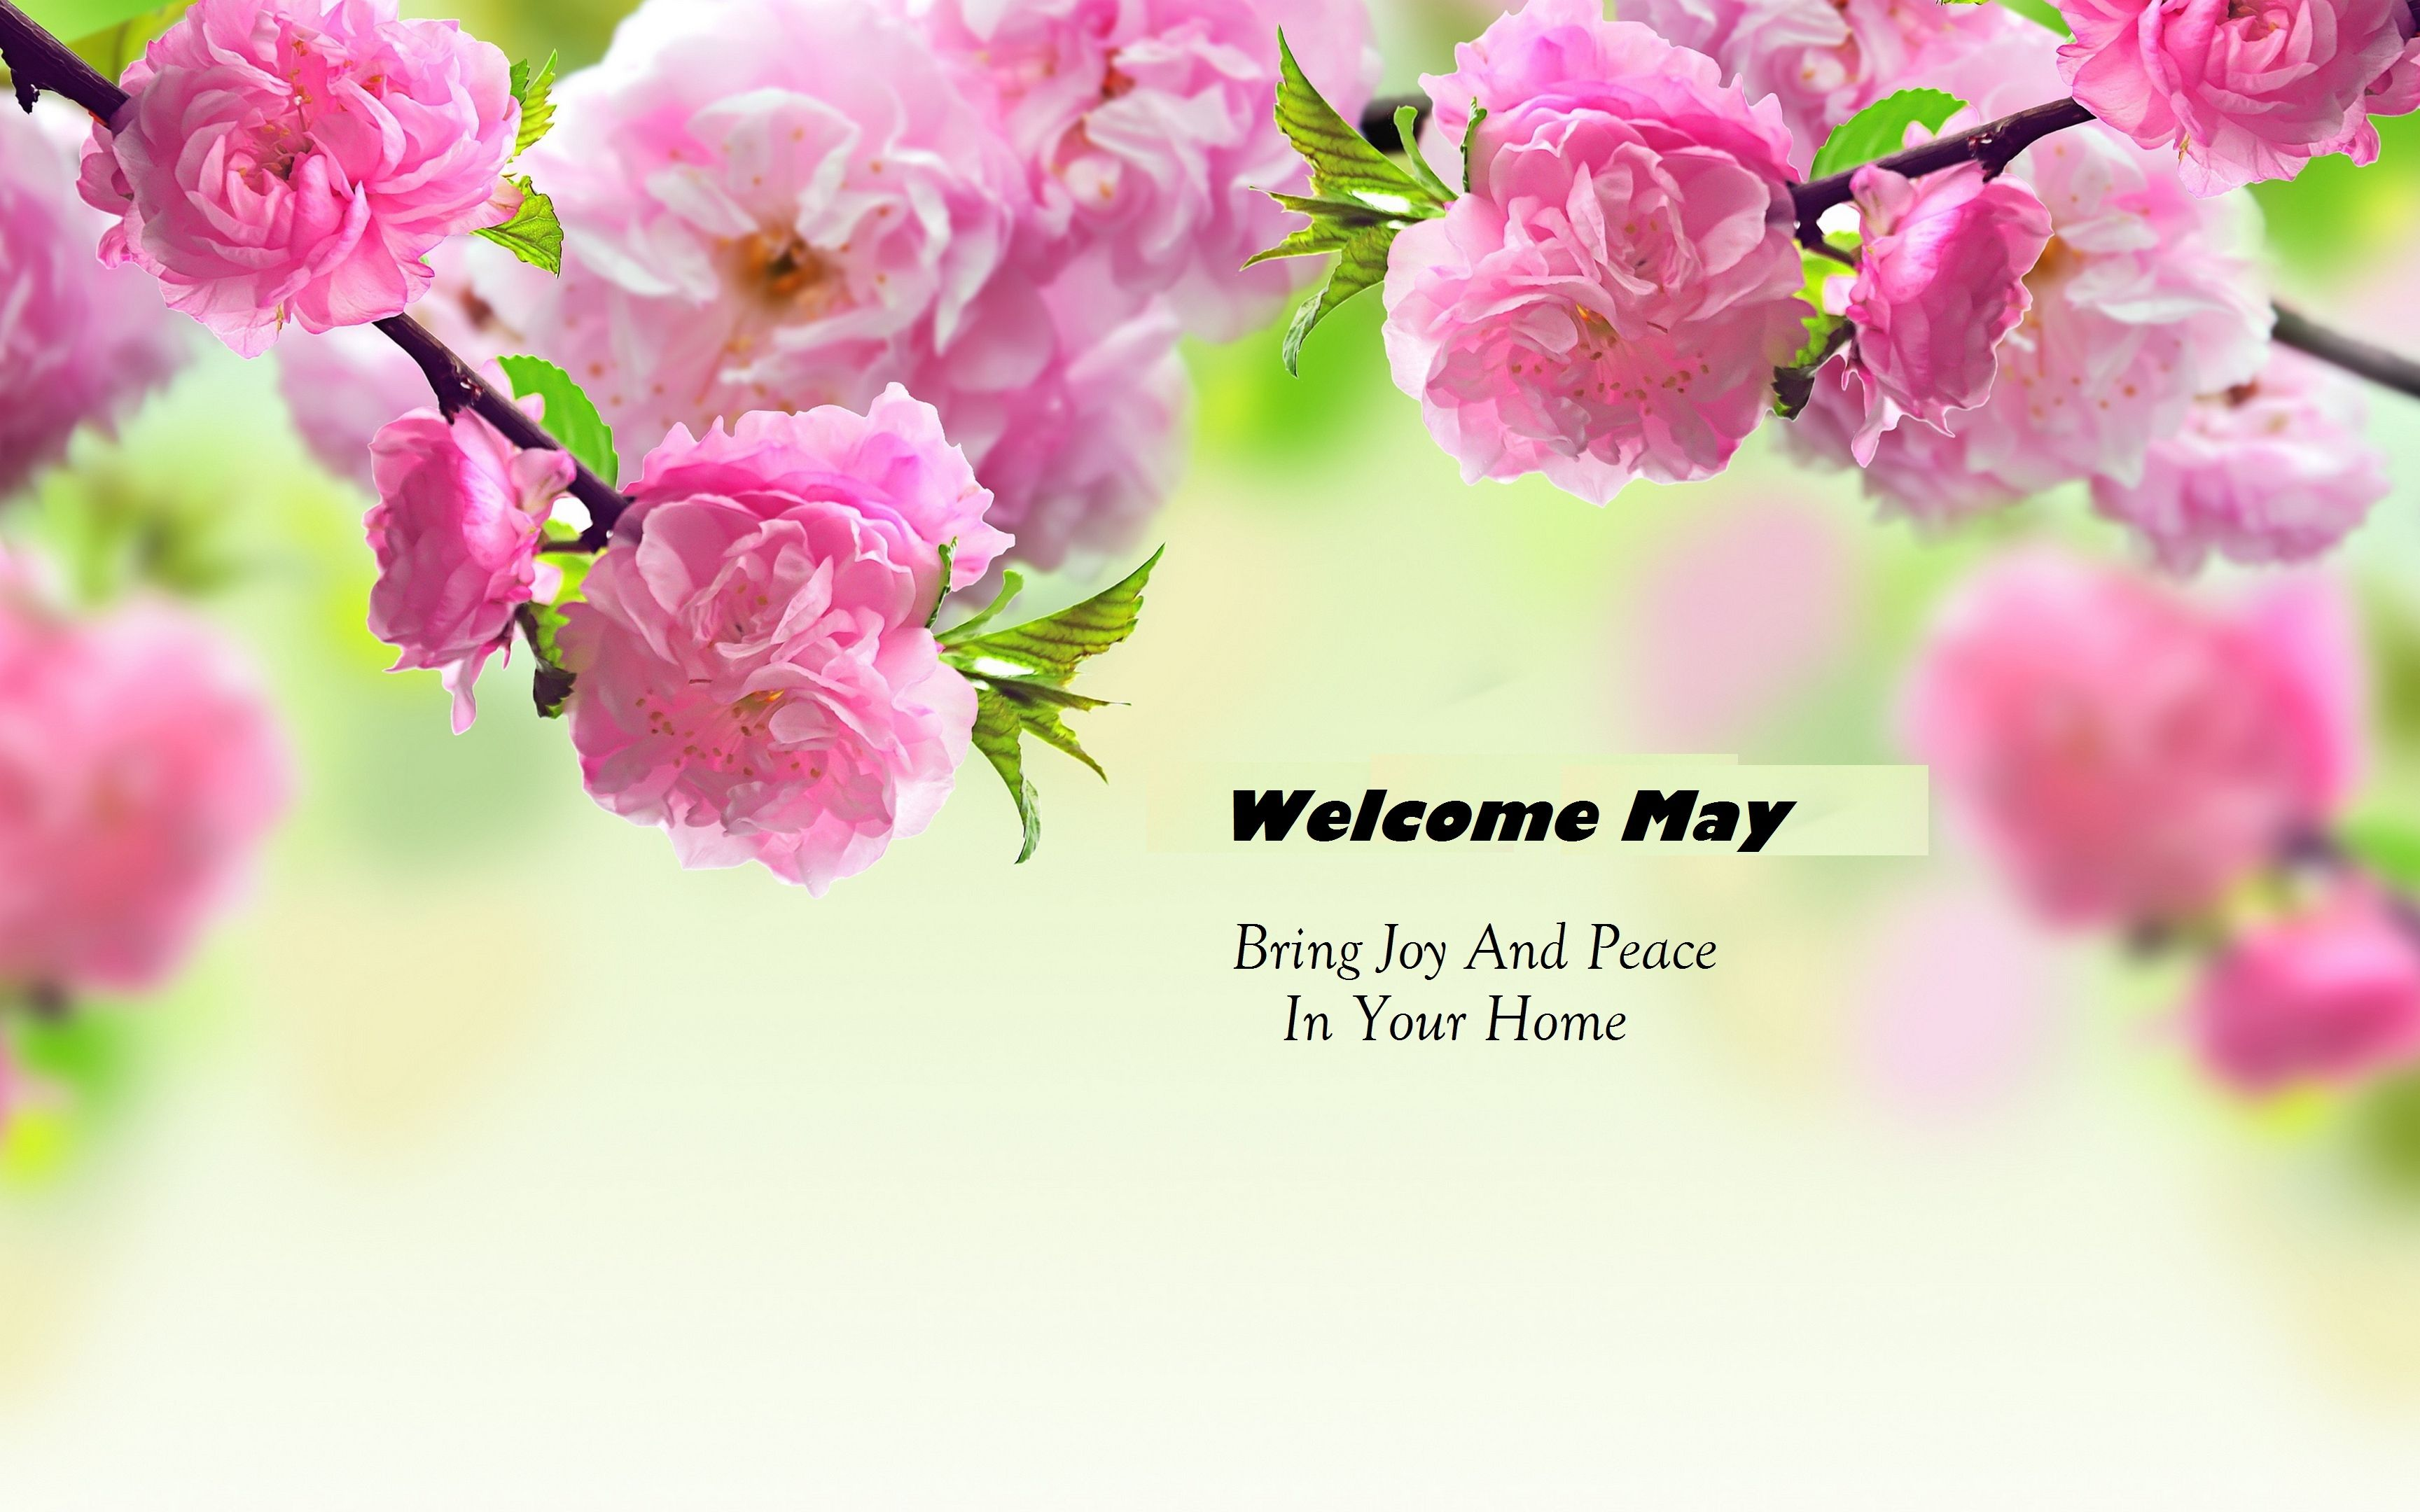 Welcome May Images Pictures Photos Wallpaper Free Download Hello